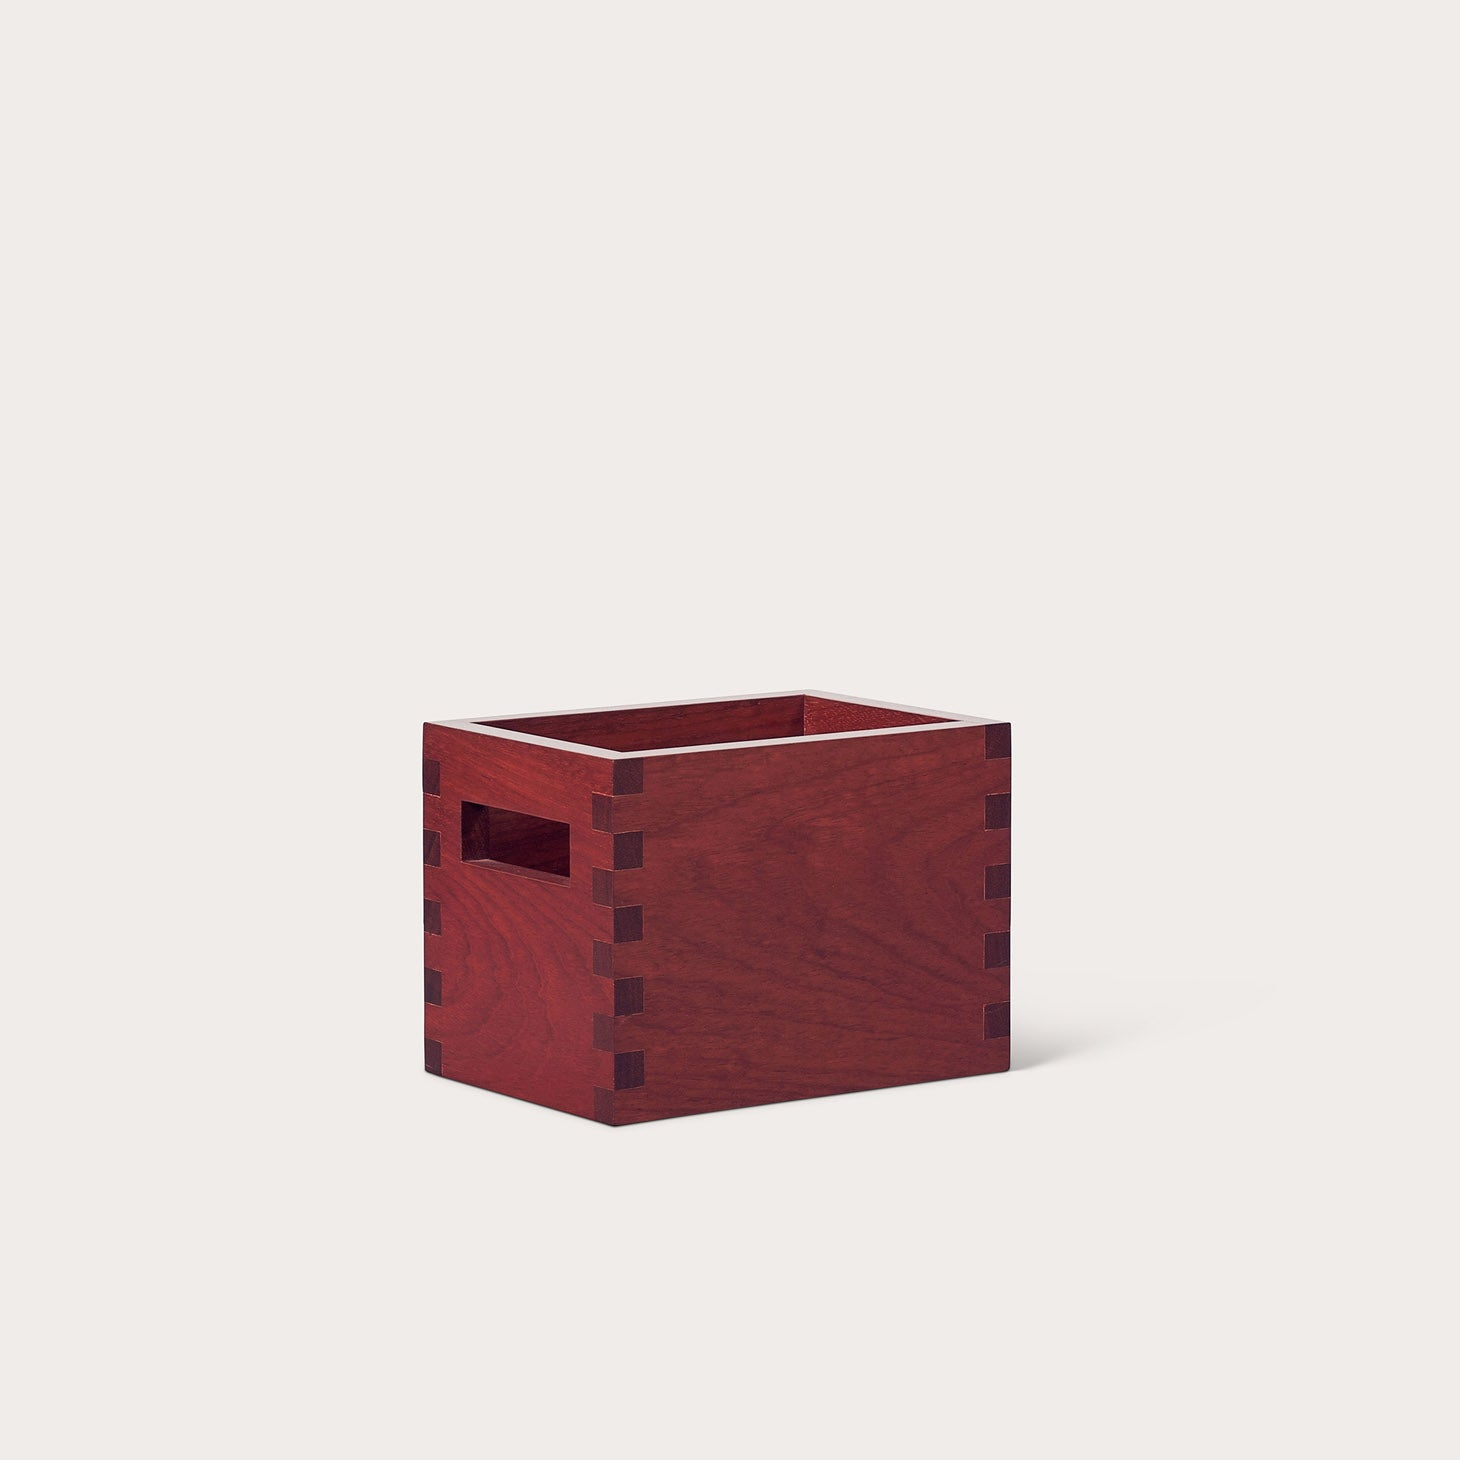 Bienal Box Accessories Etel Carmona Designer Furniture Sku: 003-100-10069